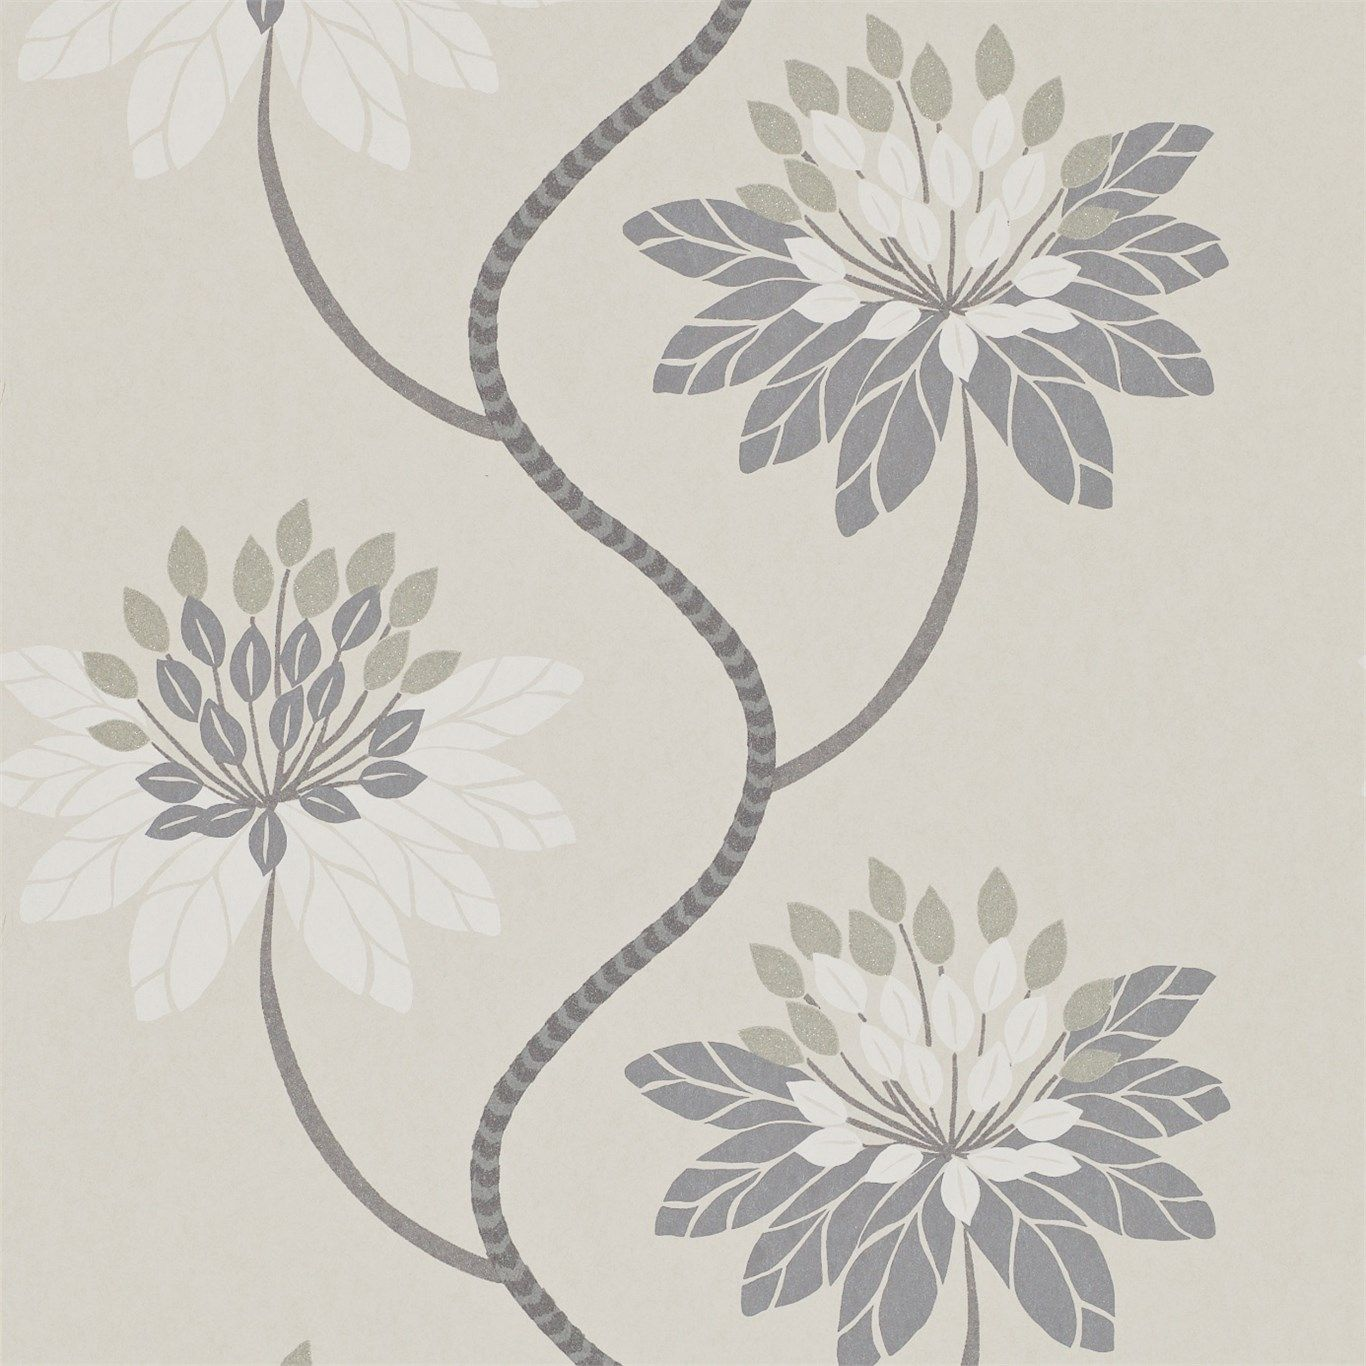 Products | Harlequin - Designer Fabrics and Wallpapers | Eloise (HWHI111191) | Purity Wallpapers